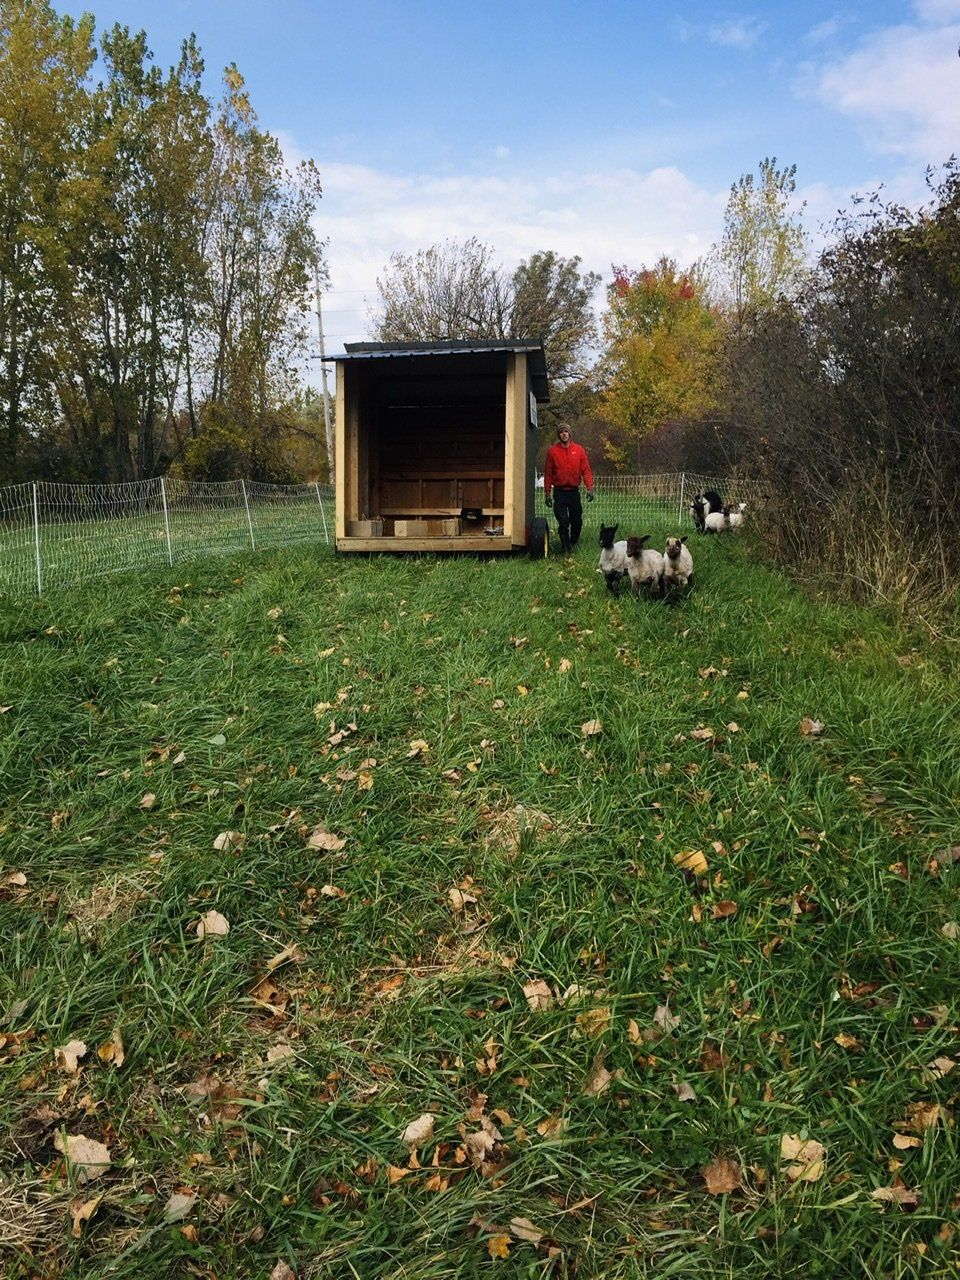 Previous Happening: Farm Happenings for October 21, 2020